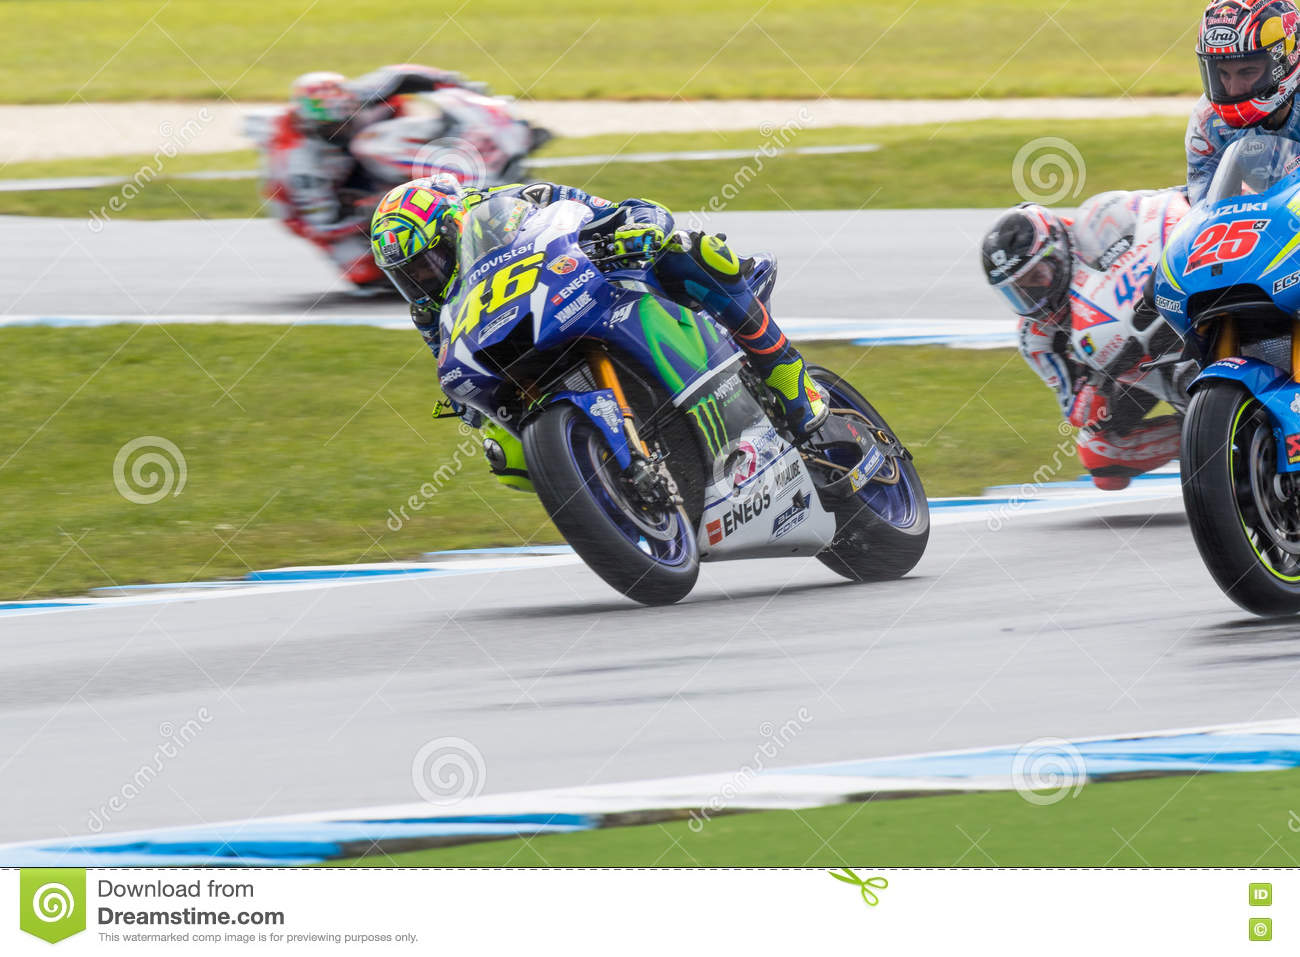 Michelin Australian Motorcycle Grand Prix 2016